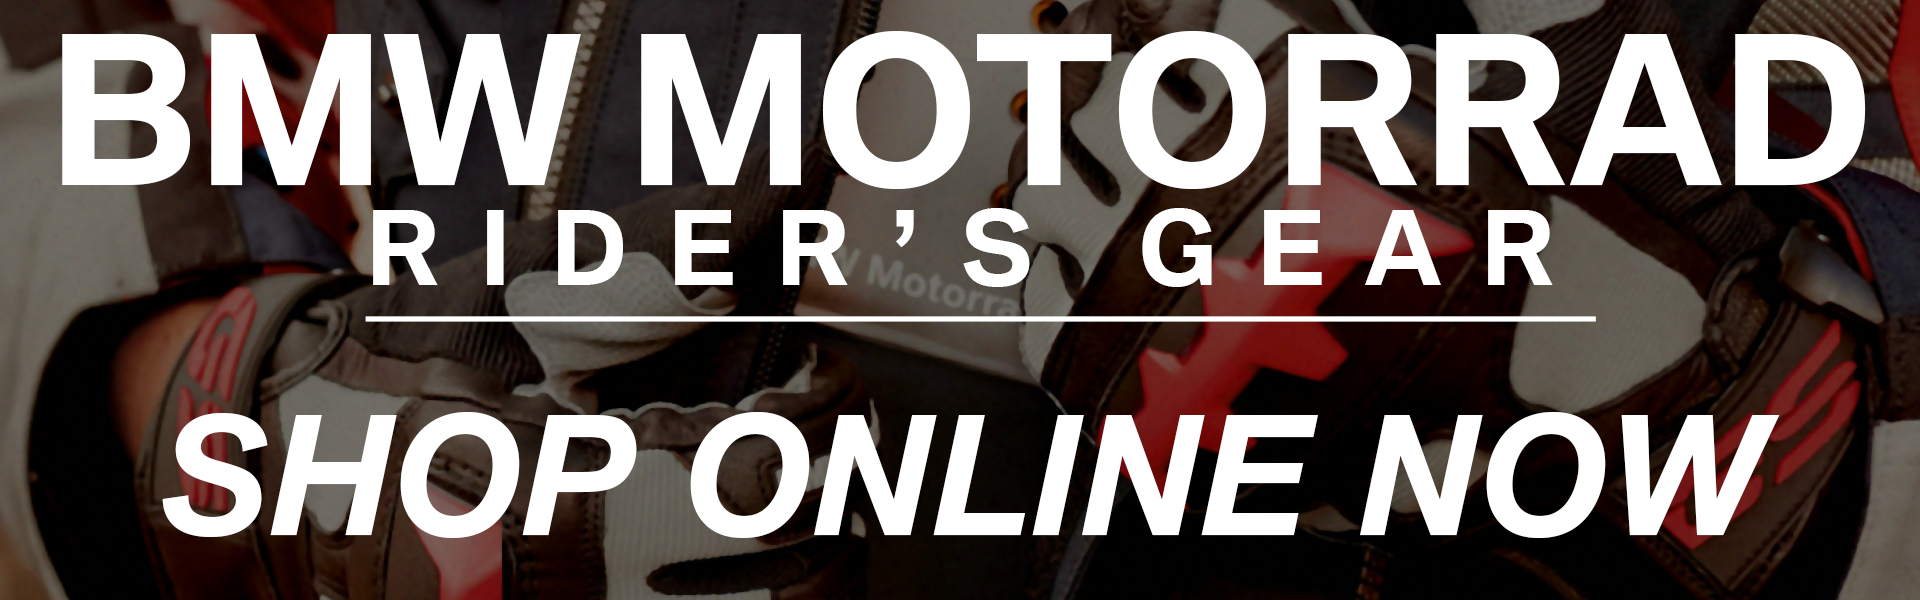 BMW Motorrad Rider's Gear Now Available Online - Wear The Best When You Ride The Best